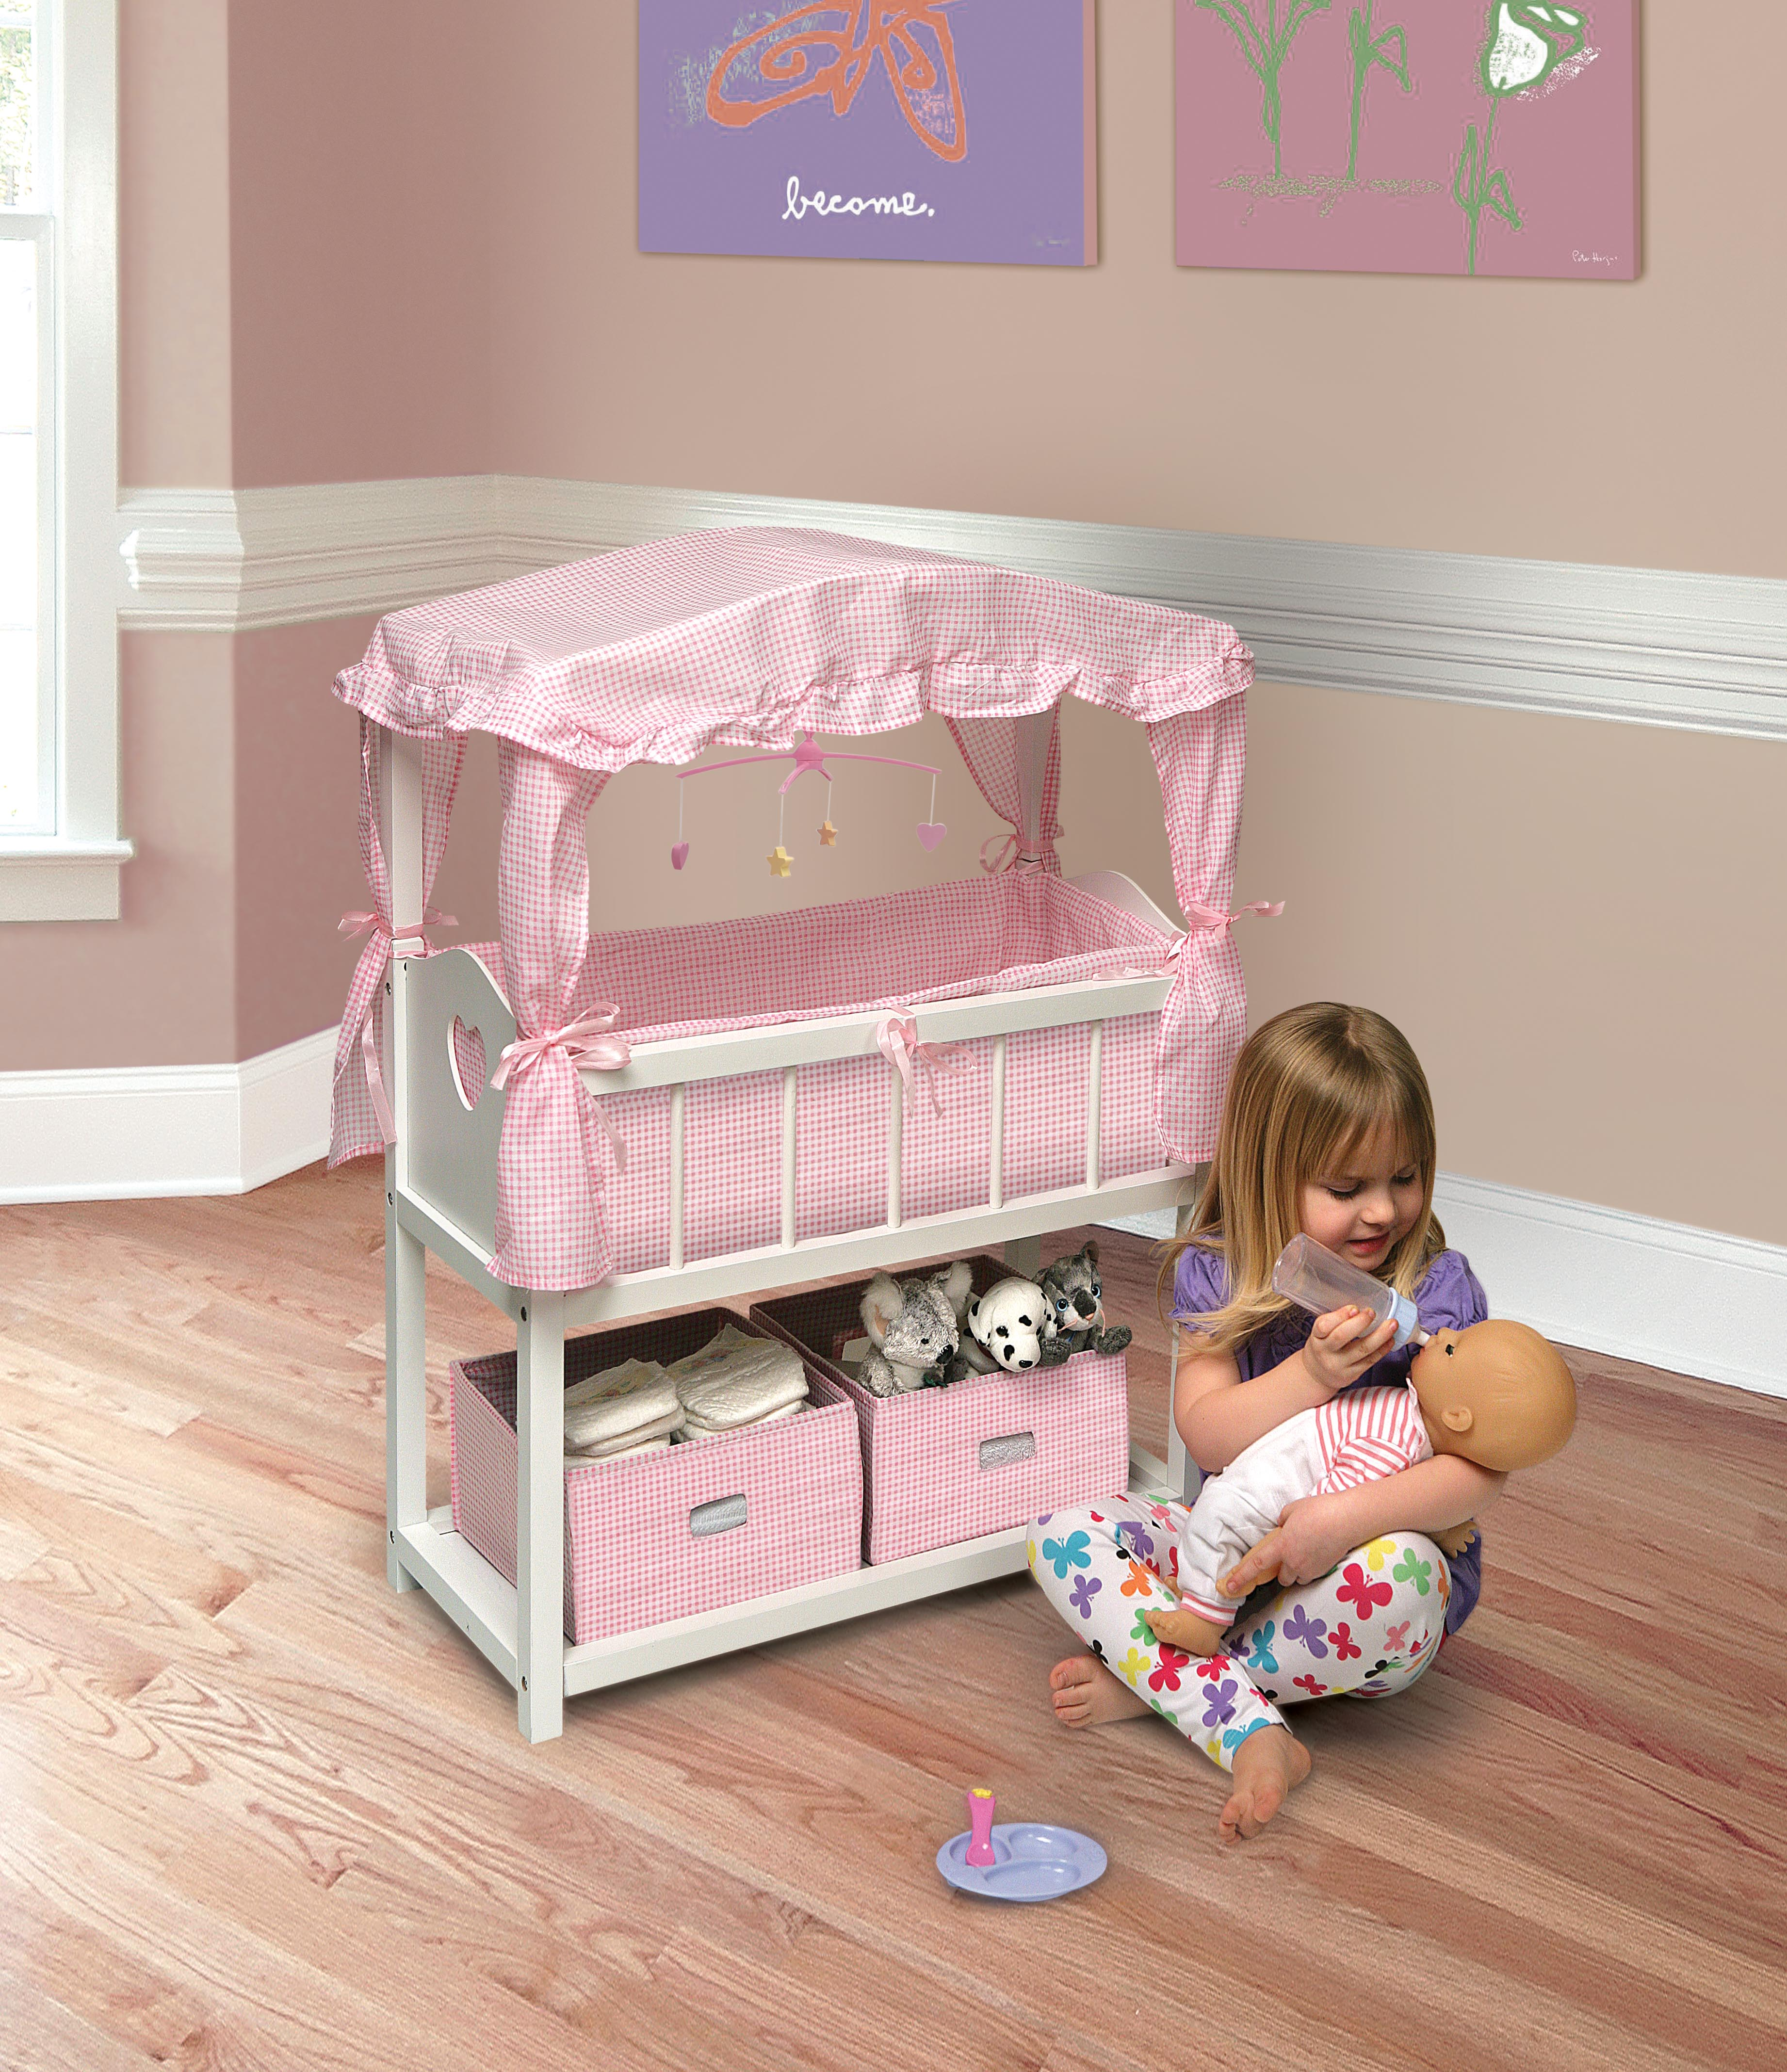 crib not included American Girl Bitty Baby SWEET /& SOFT CANOPY